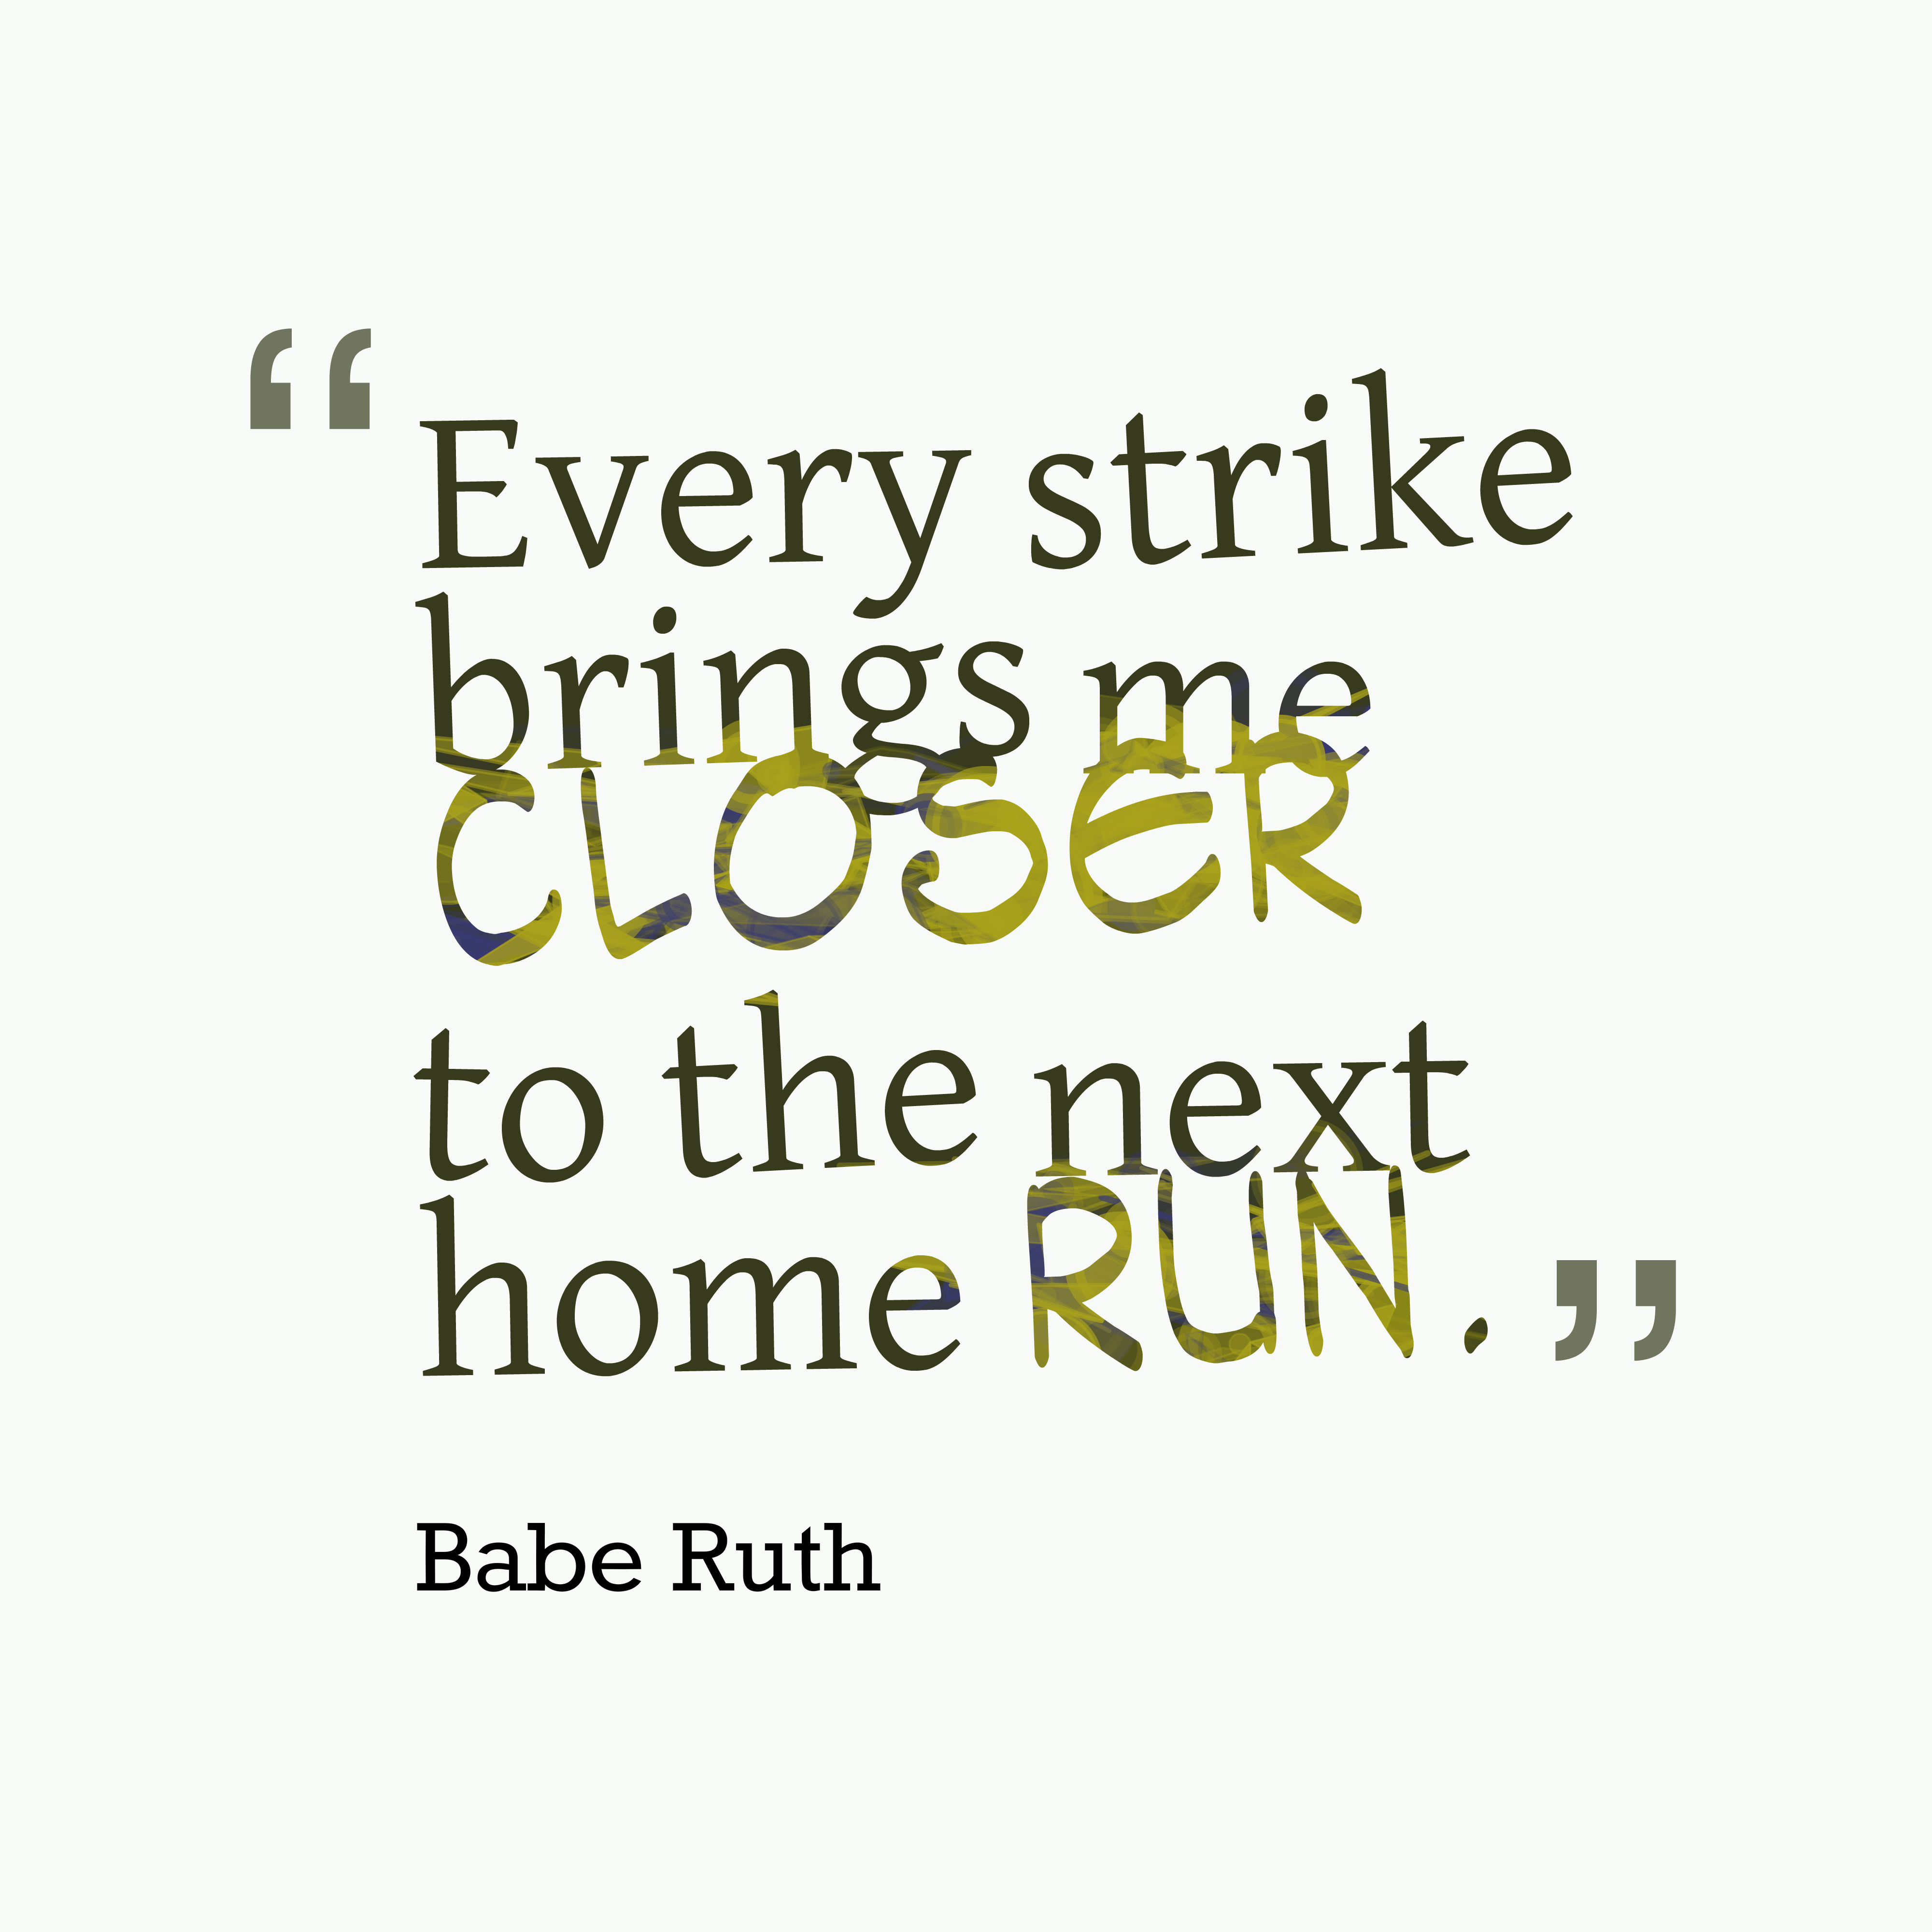 Quotes image of Every strike brings me closer to the next home run.